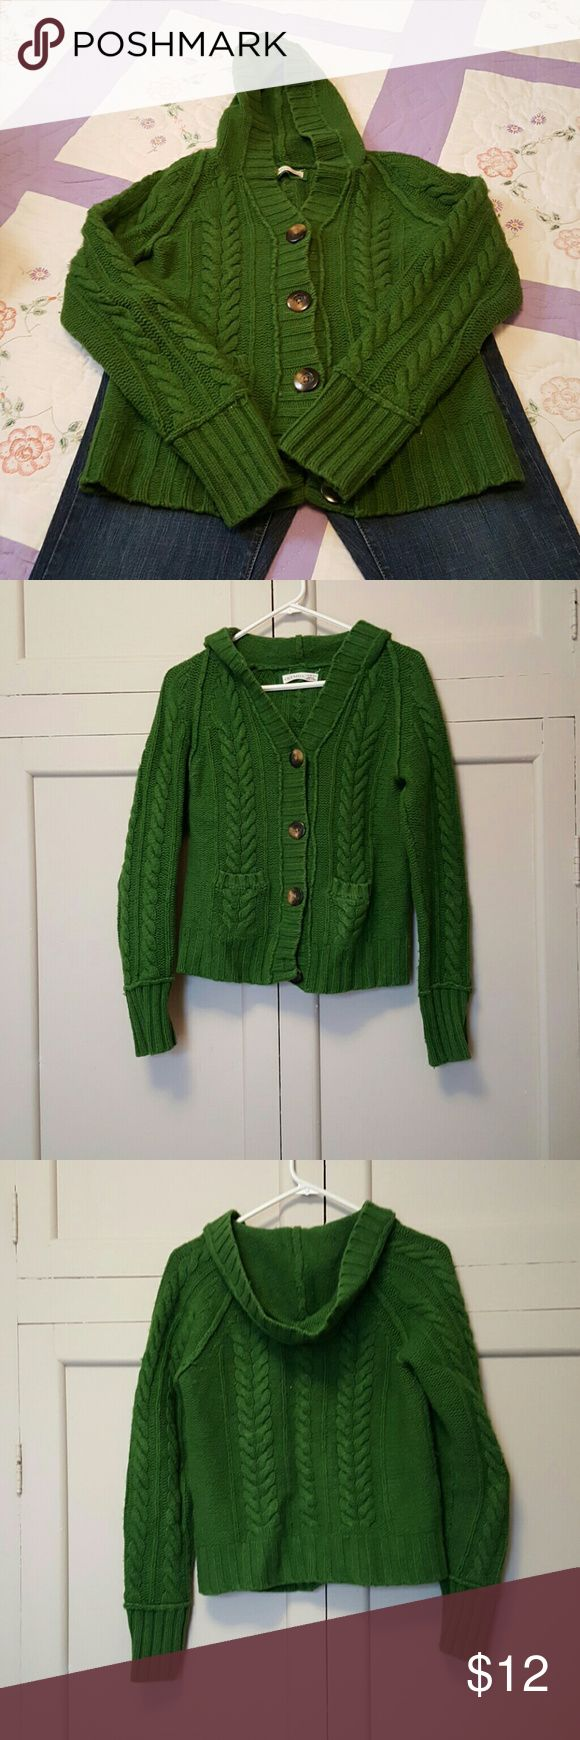 Old navy sweater Great sweater jacket in grean color. Nice and heavy sweater. I …